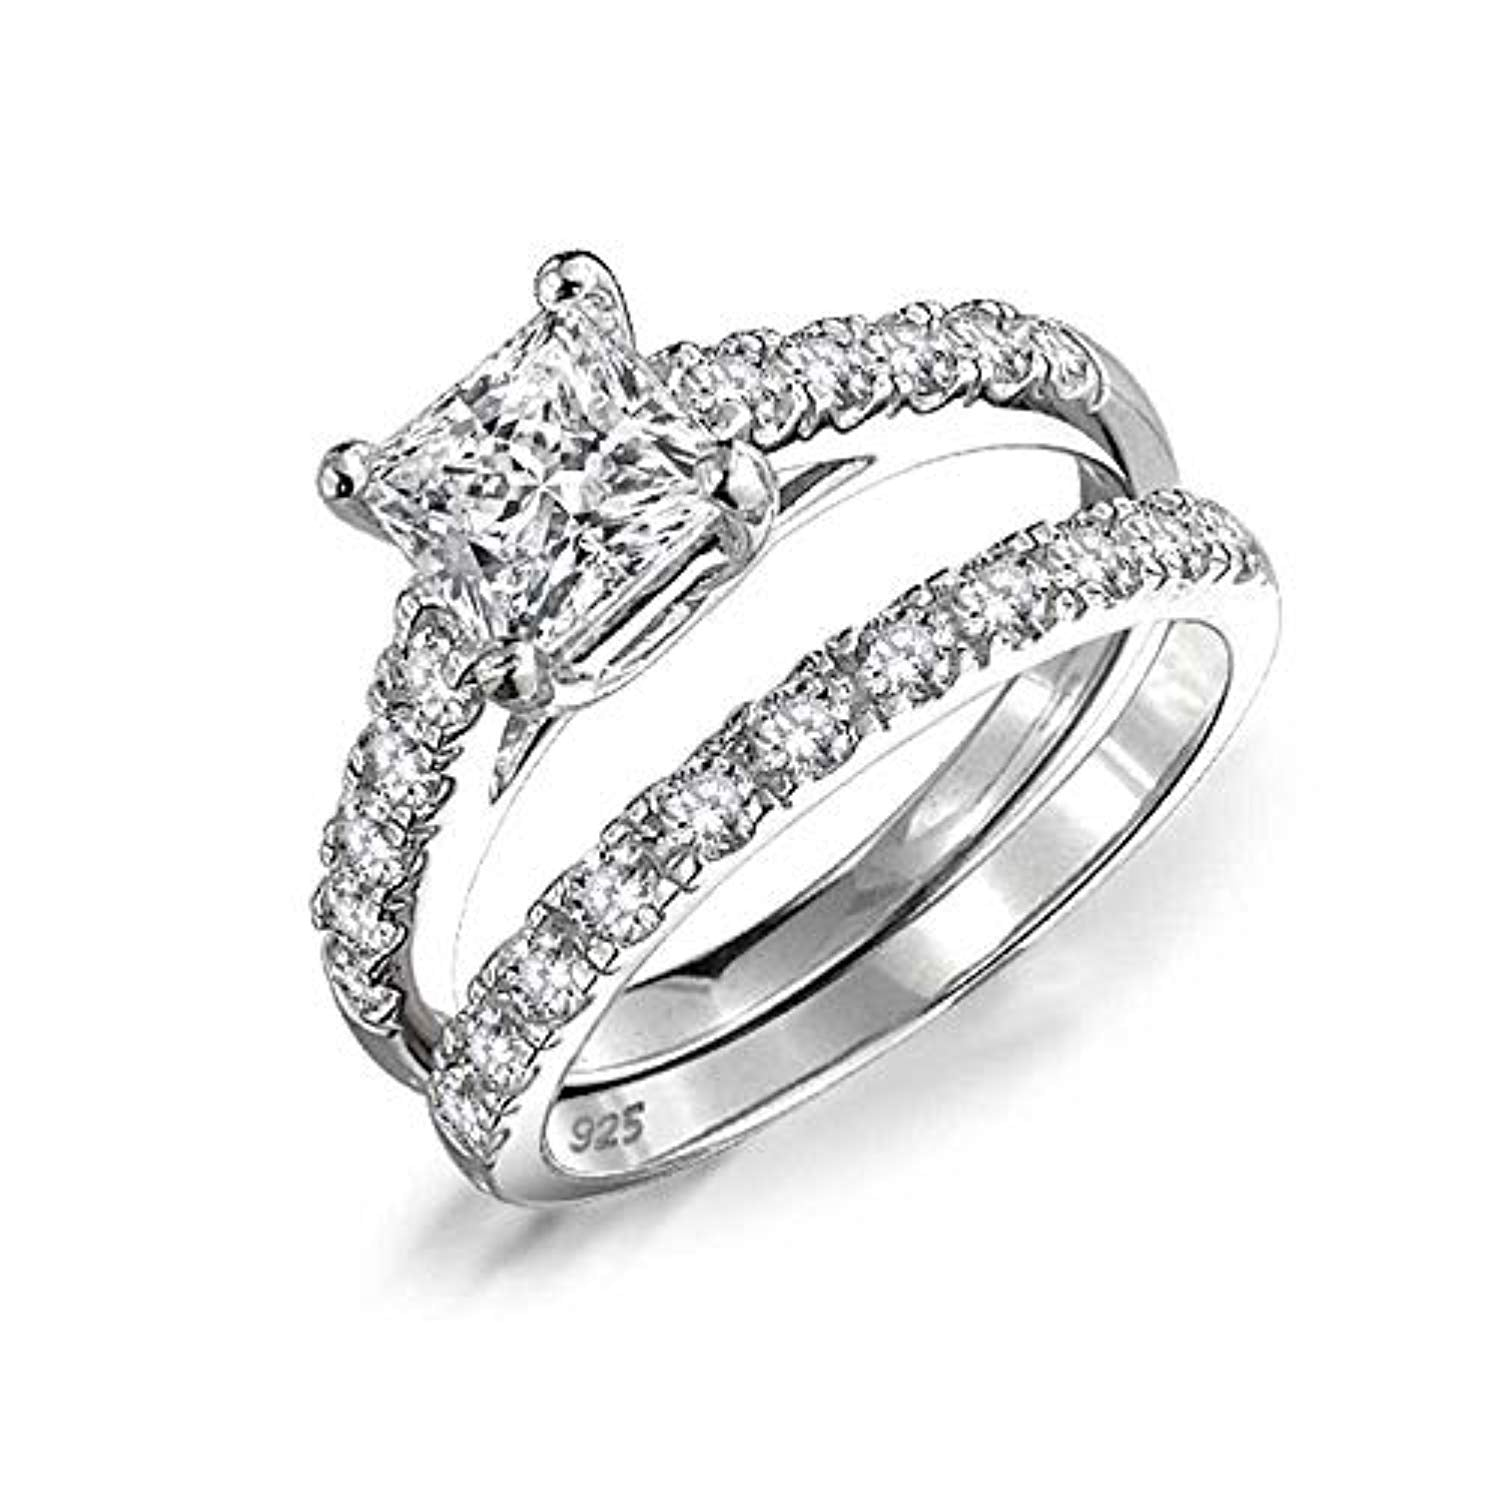 1CT Cubic Zirconia Square Princess Cut Solitaire Thin Pave Band AAA CZ Engagement Wedding Ring Set 925 Sterling Silver